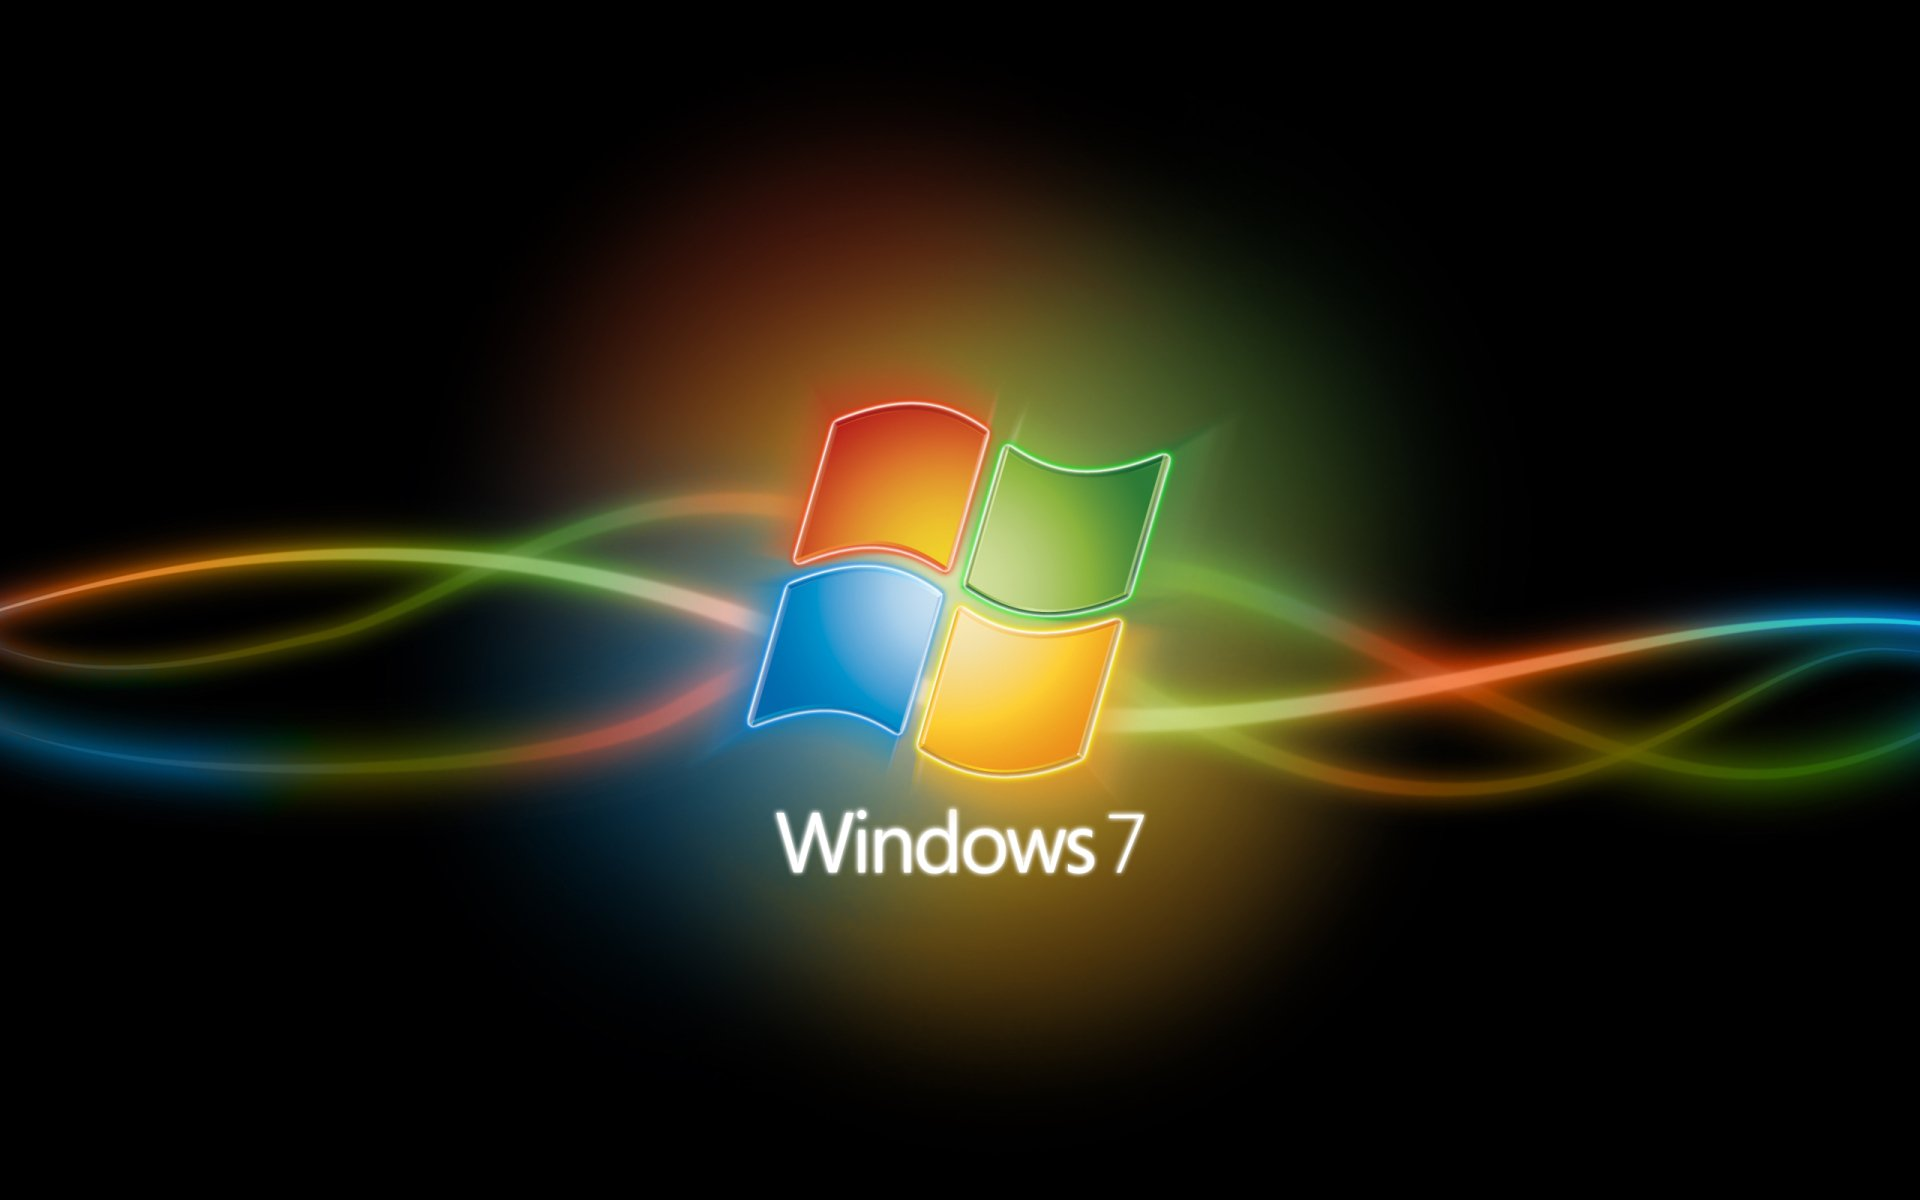 Technology - Windows 7  Microsoft Wallpaper